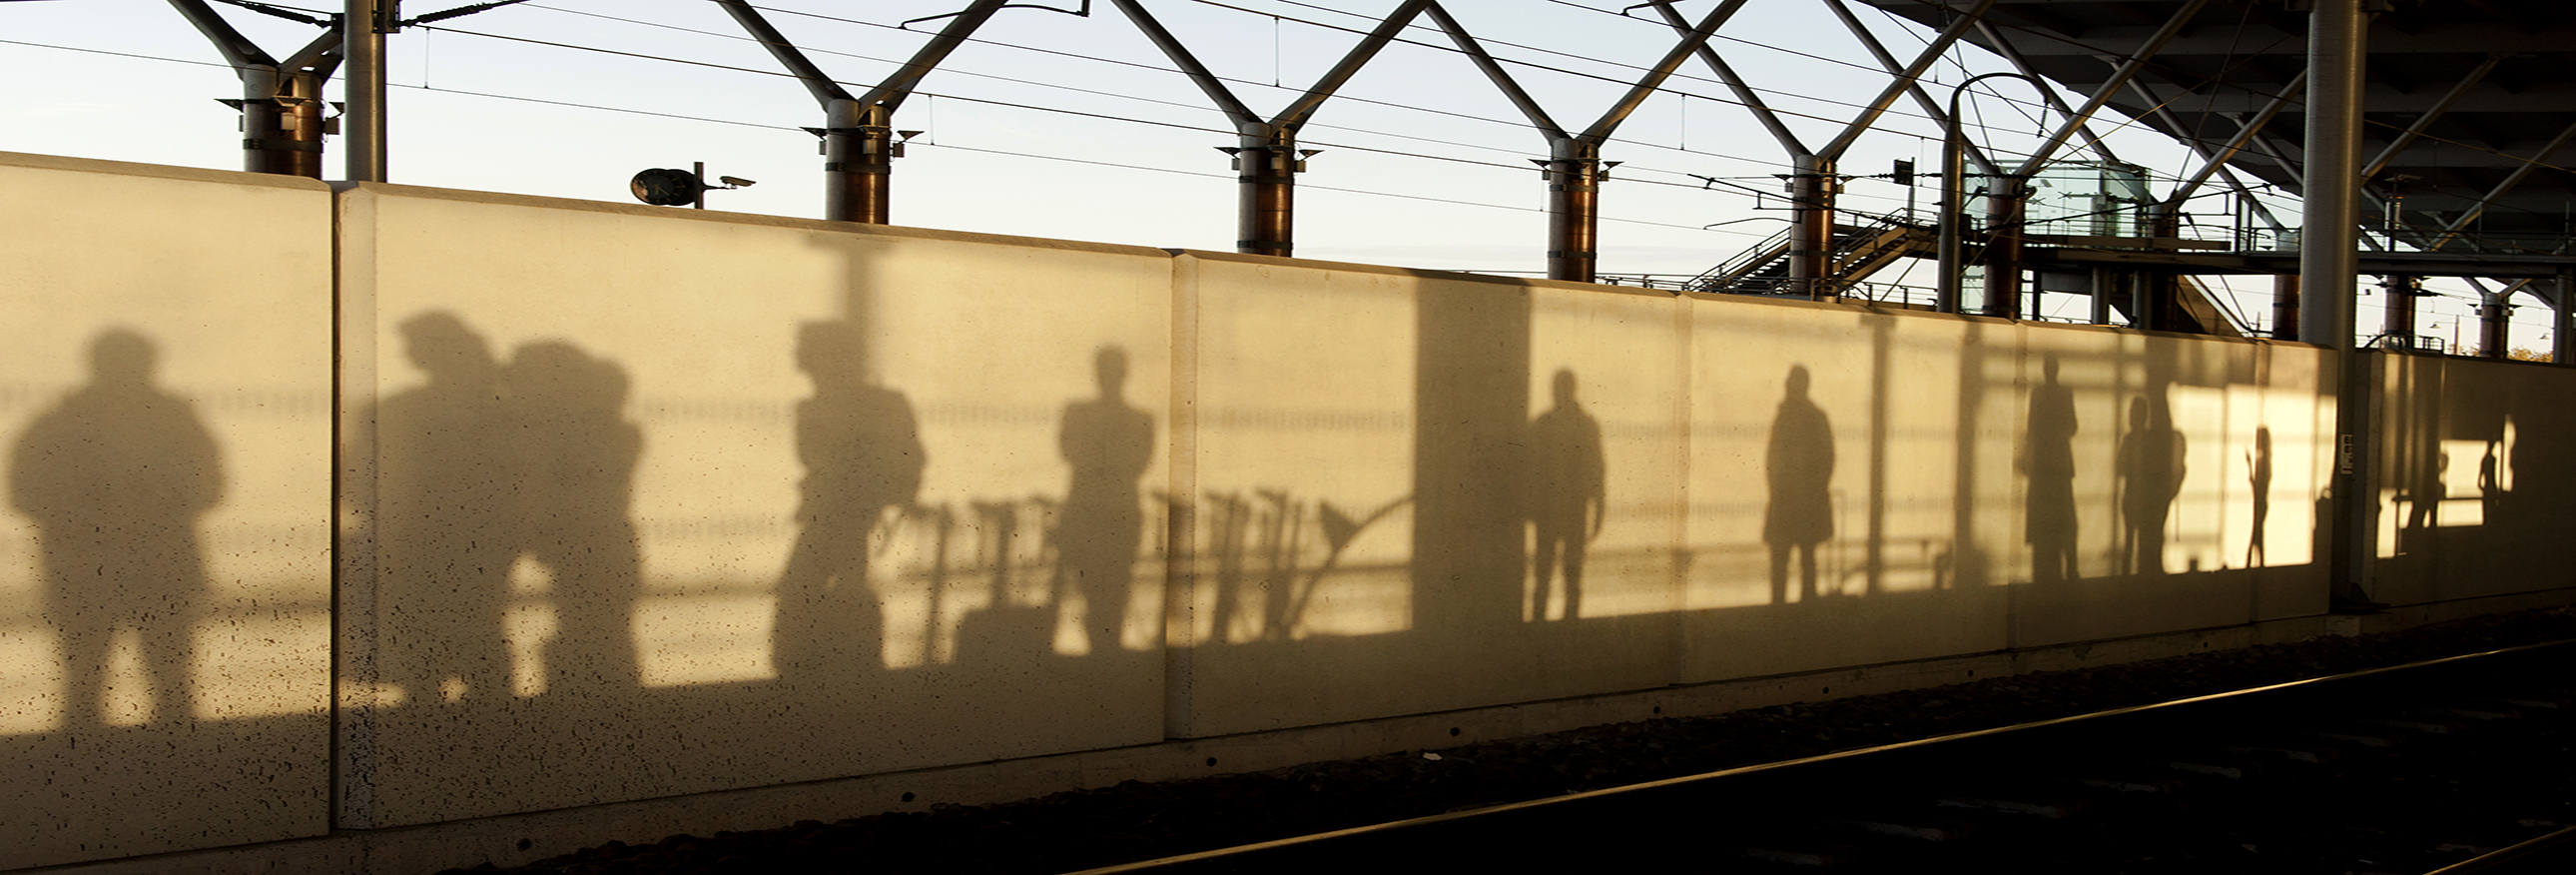 shadows on a wall